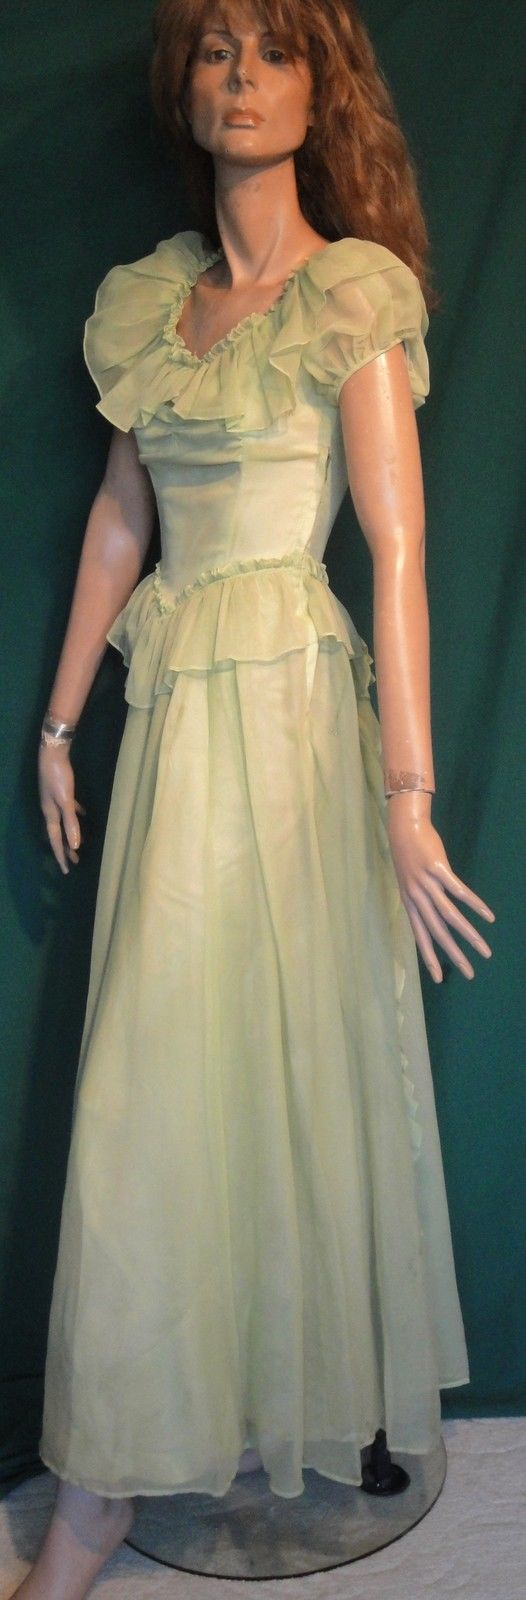 Gorgeous mint green long us side zip vintage gown long dress b